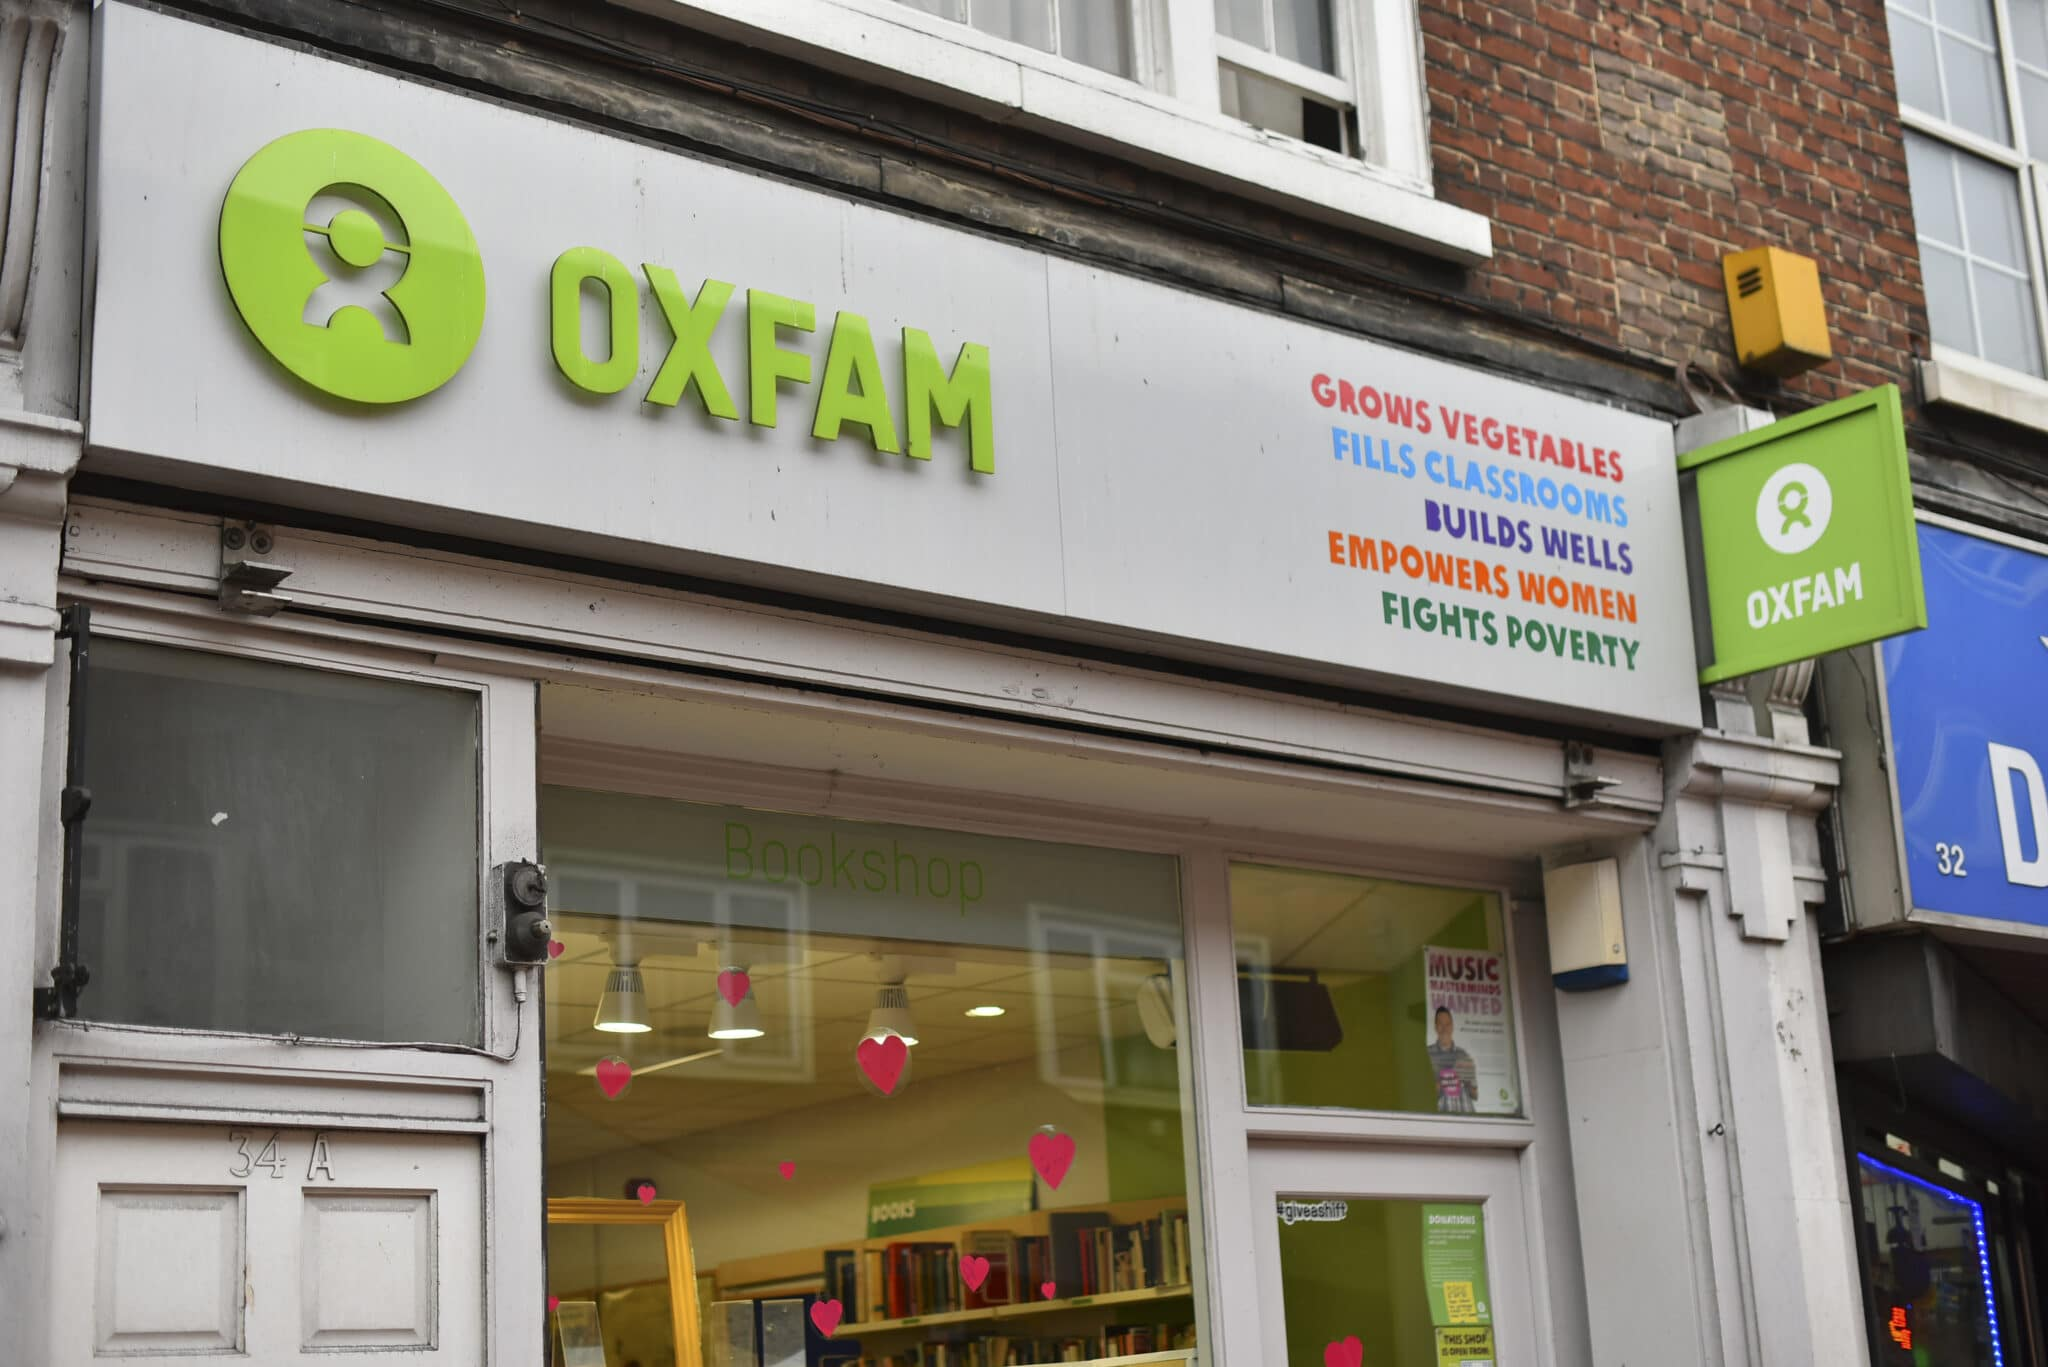 Oxfam dropping Wonder Women game had nothing to do with JK Rowling, employee says